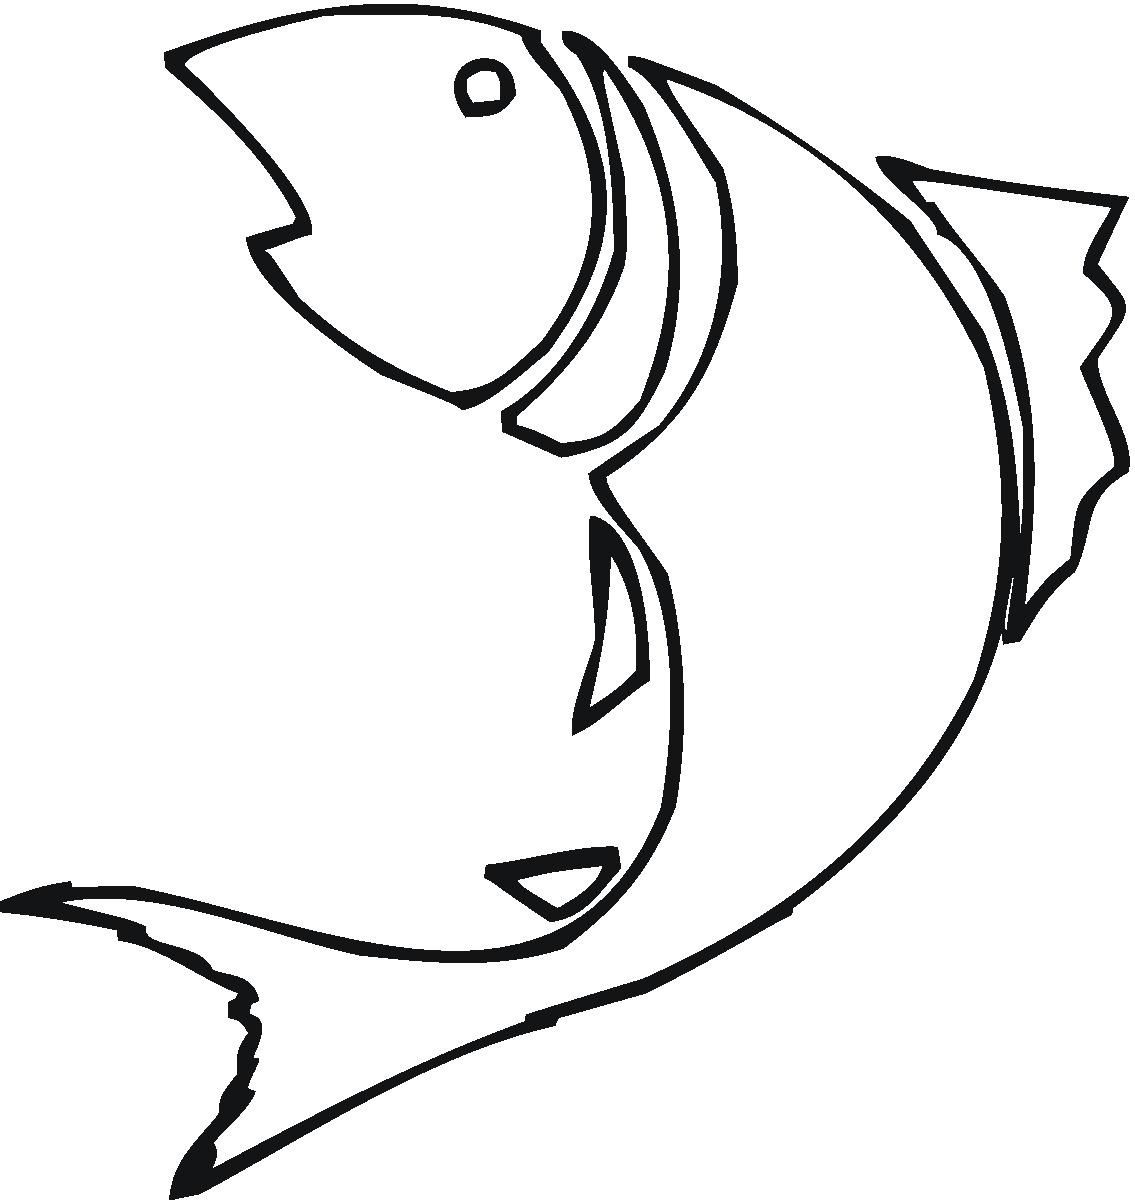 Drawing clipart fish. Value easy sketches weird